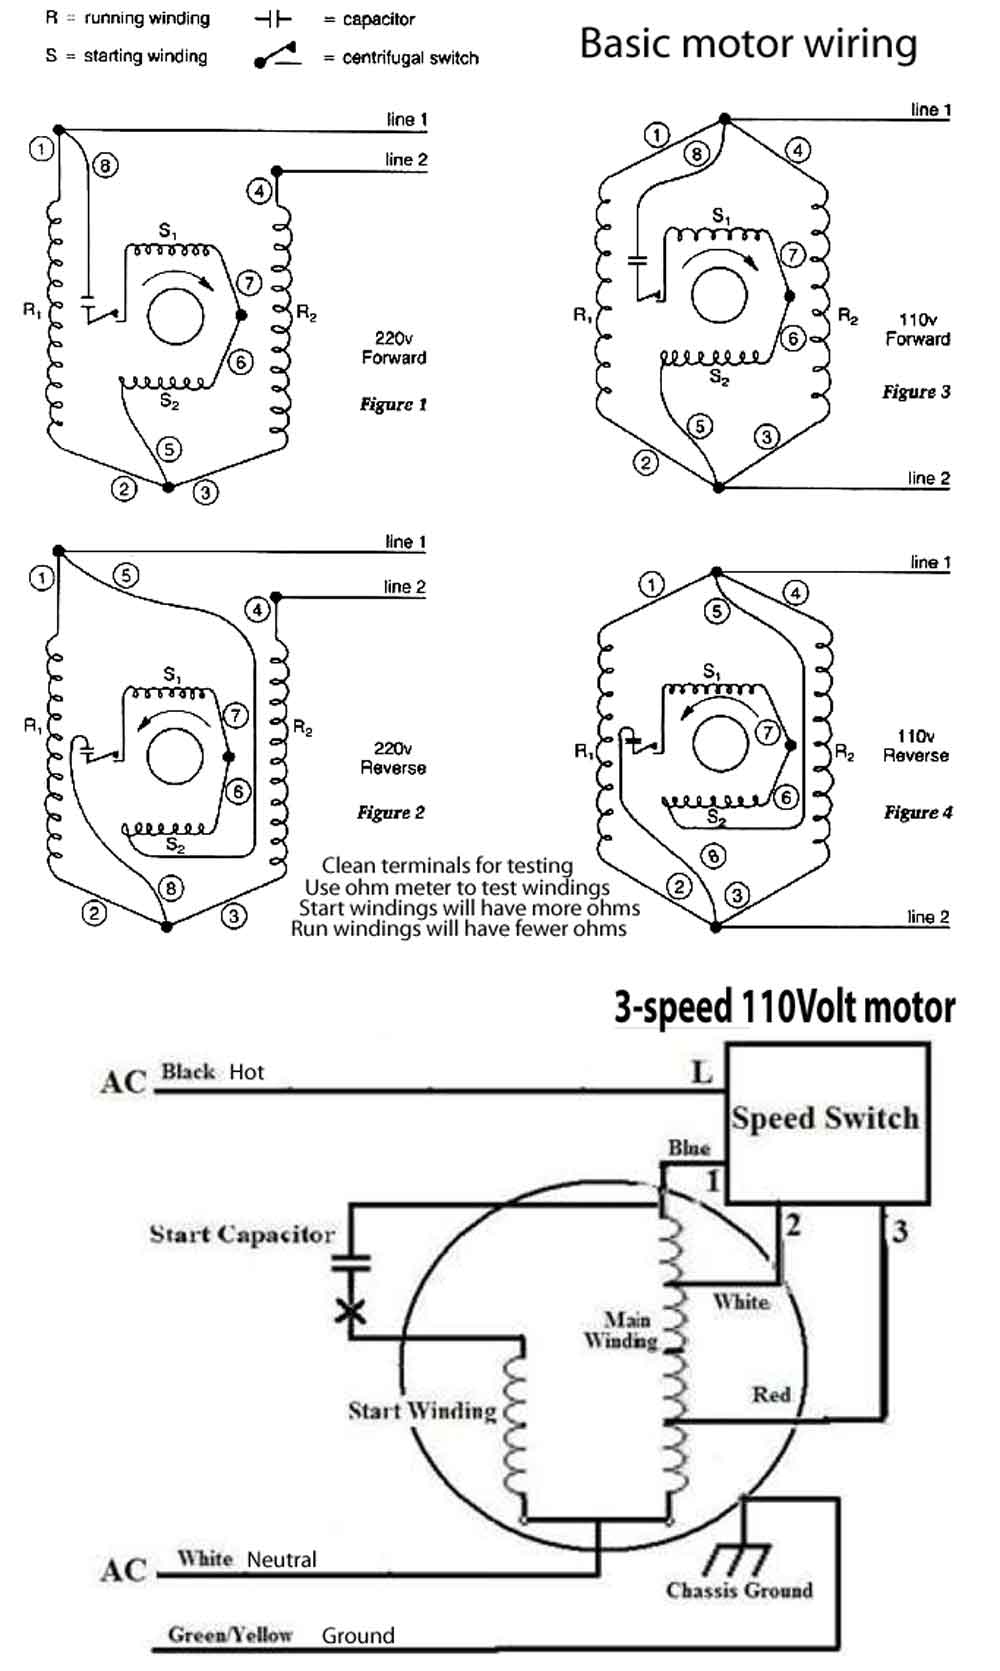 Motor wiring 500 how to wire 3 speed fan switch Grainger Motor Wiring Diagrams at crackthecode.co